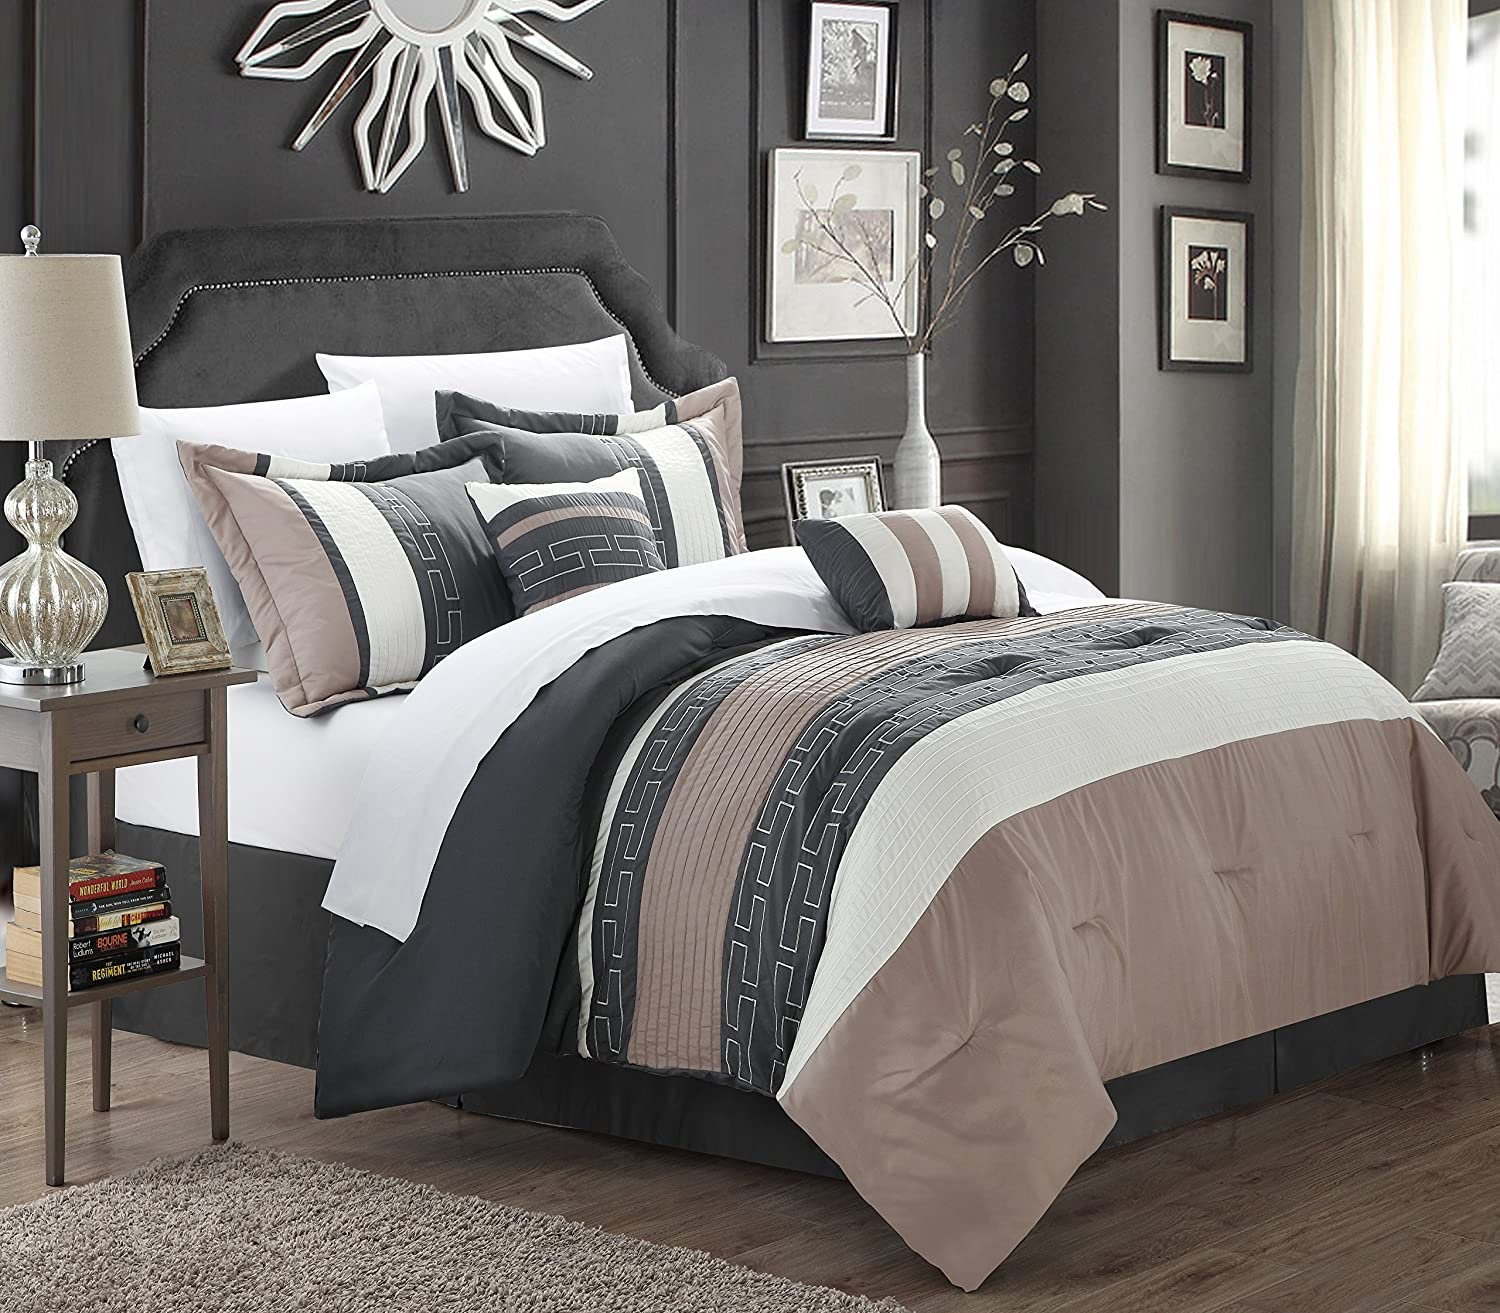 Amazoncom Chic Home Carlton 6 Piece Comforter Set Queen Size